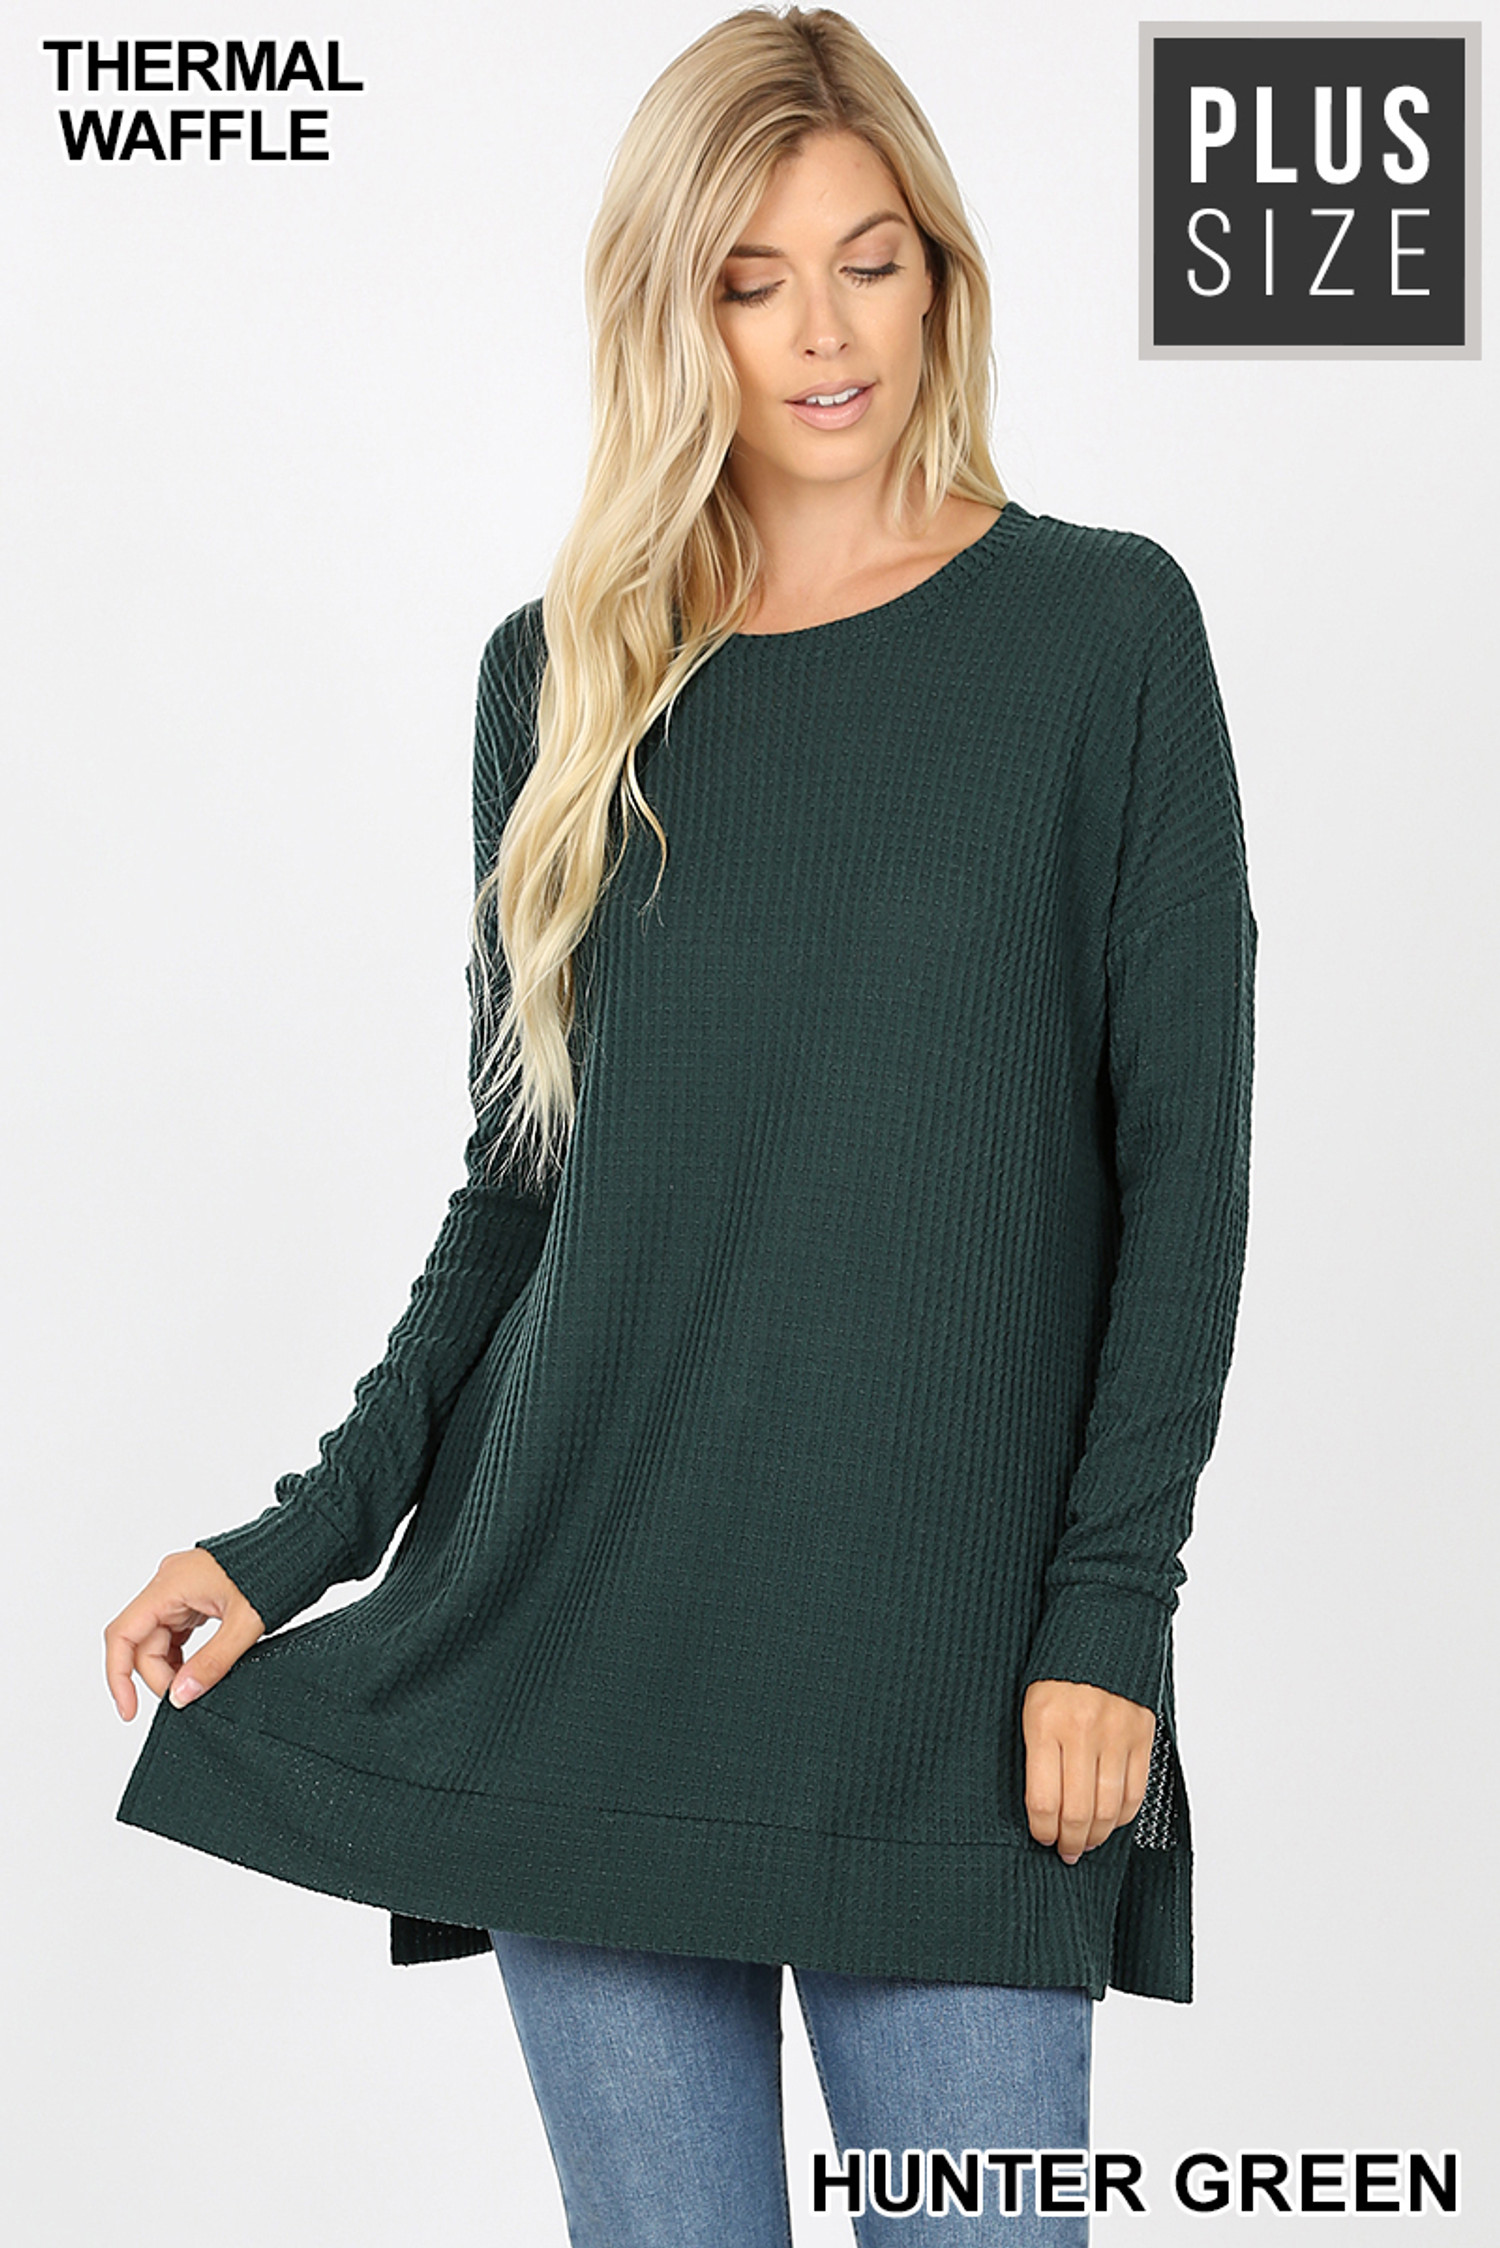 Front image of Hunter Green Brushed Thermal Waffle Knit Round Neck Plus Size Sweater